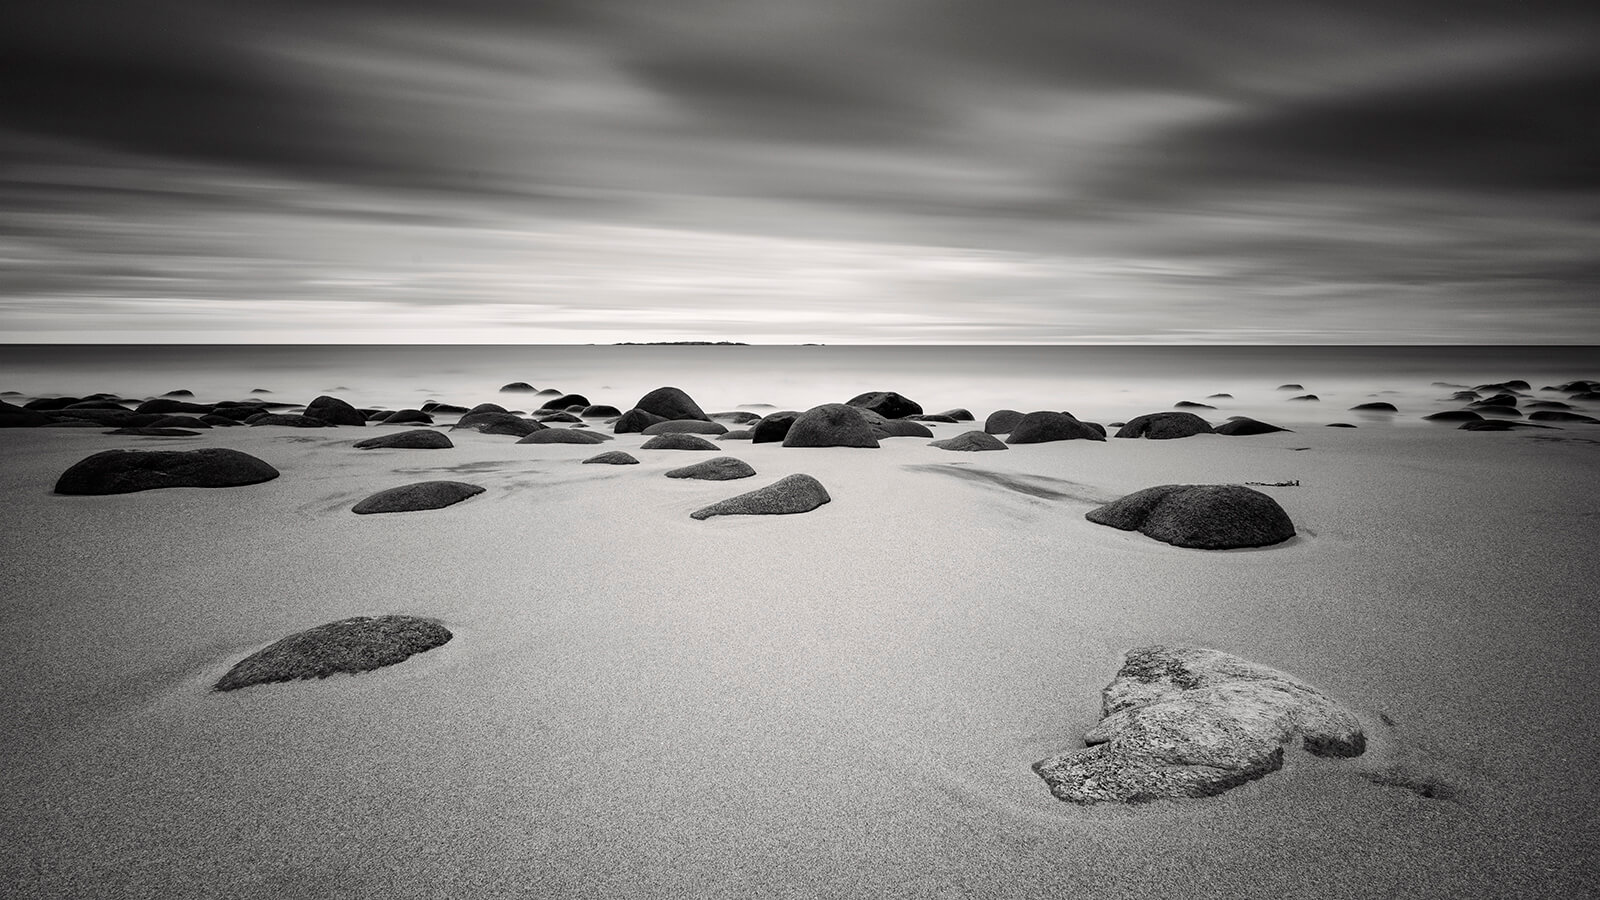 Rocks and white sand at Uttakleiv beach, Lofted Norway - By Joakim Jormelin